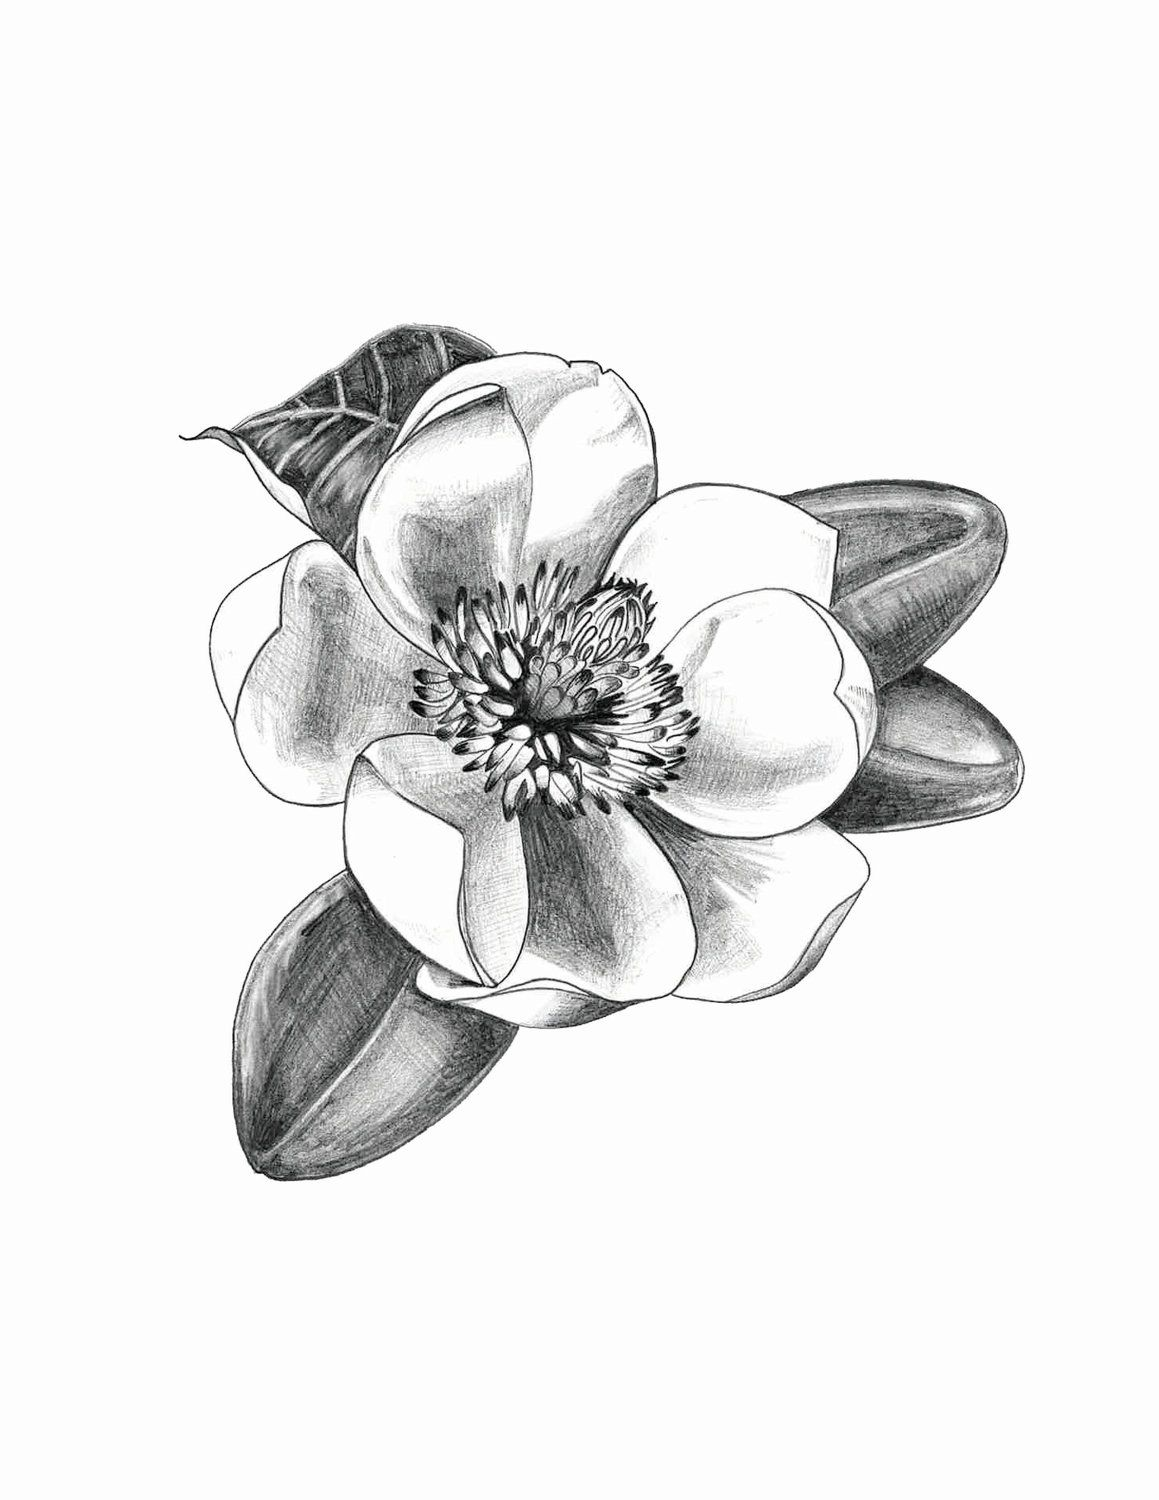 Magnolia Magnolia Tattoo Small Tattoos Girl Rib Tattoos